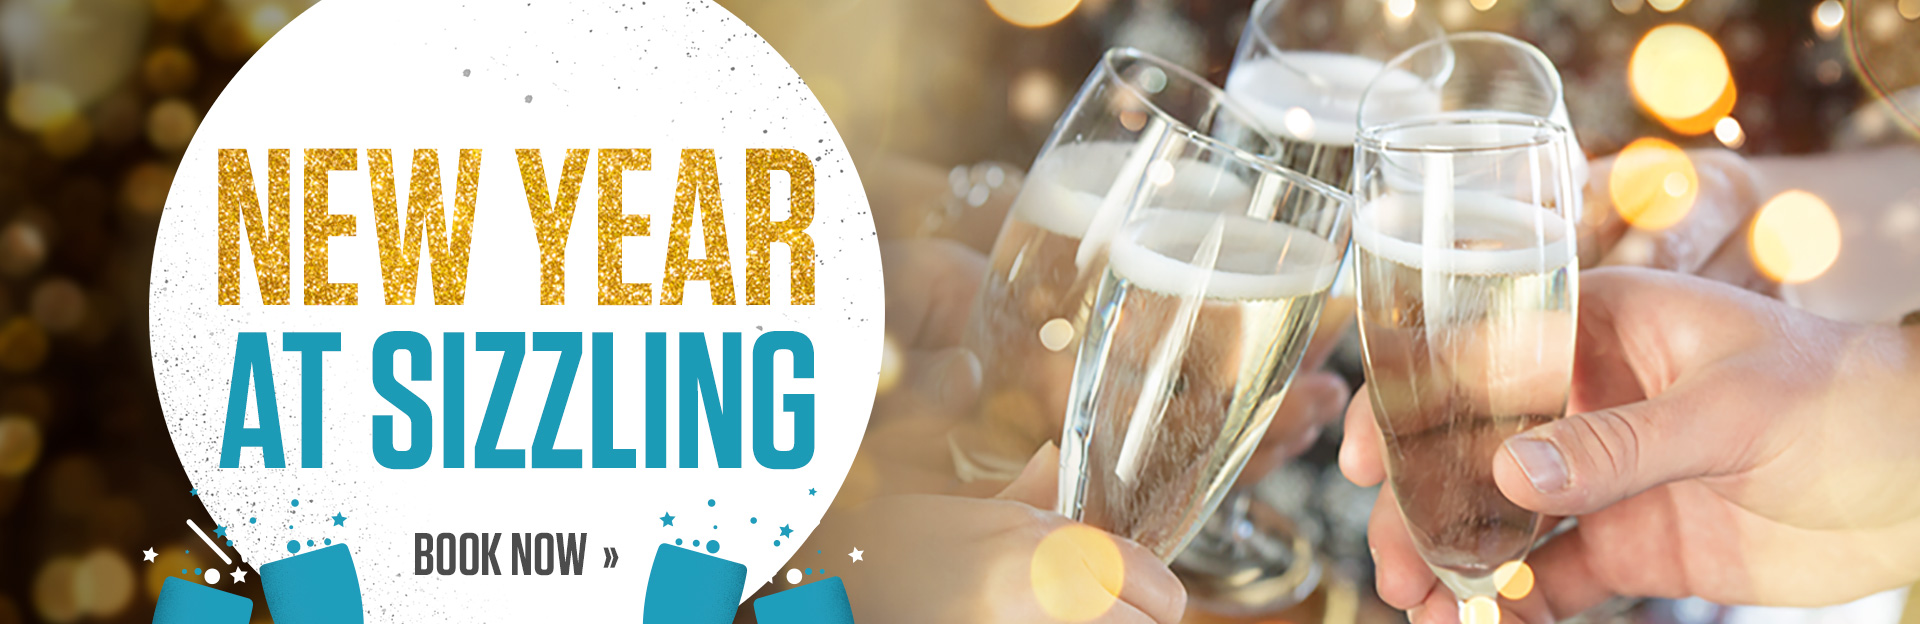 New Year's Eve at Sizzling Pub and Grill